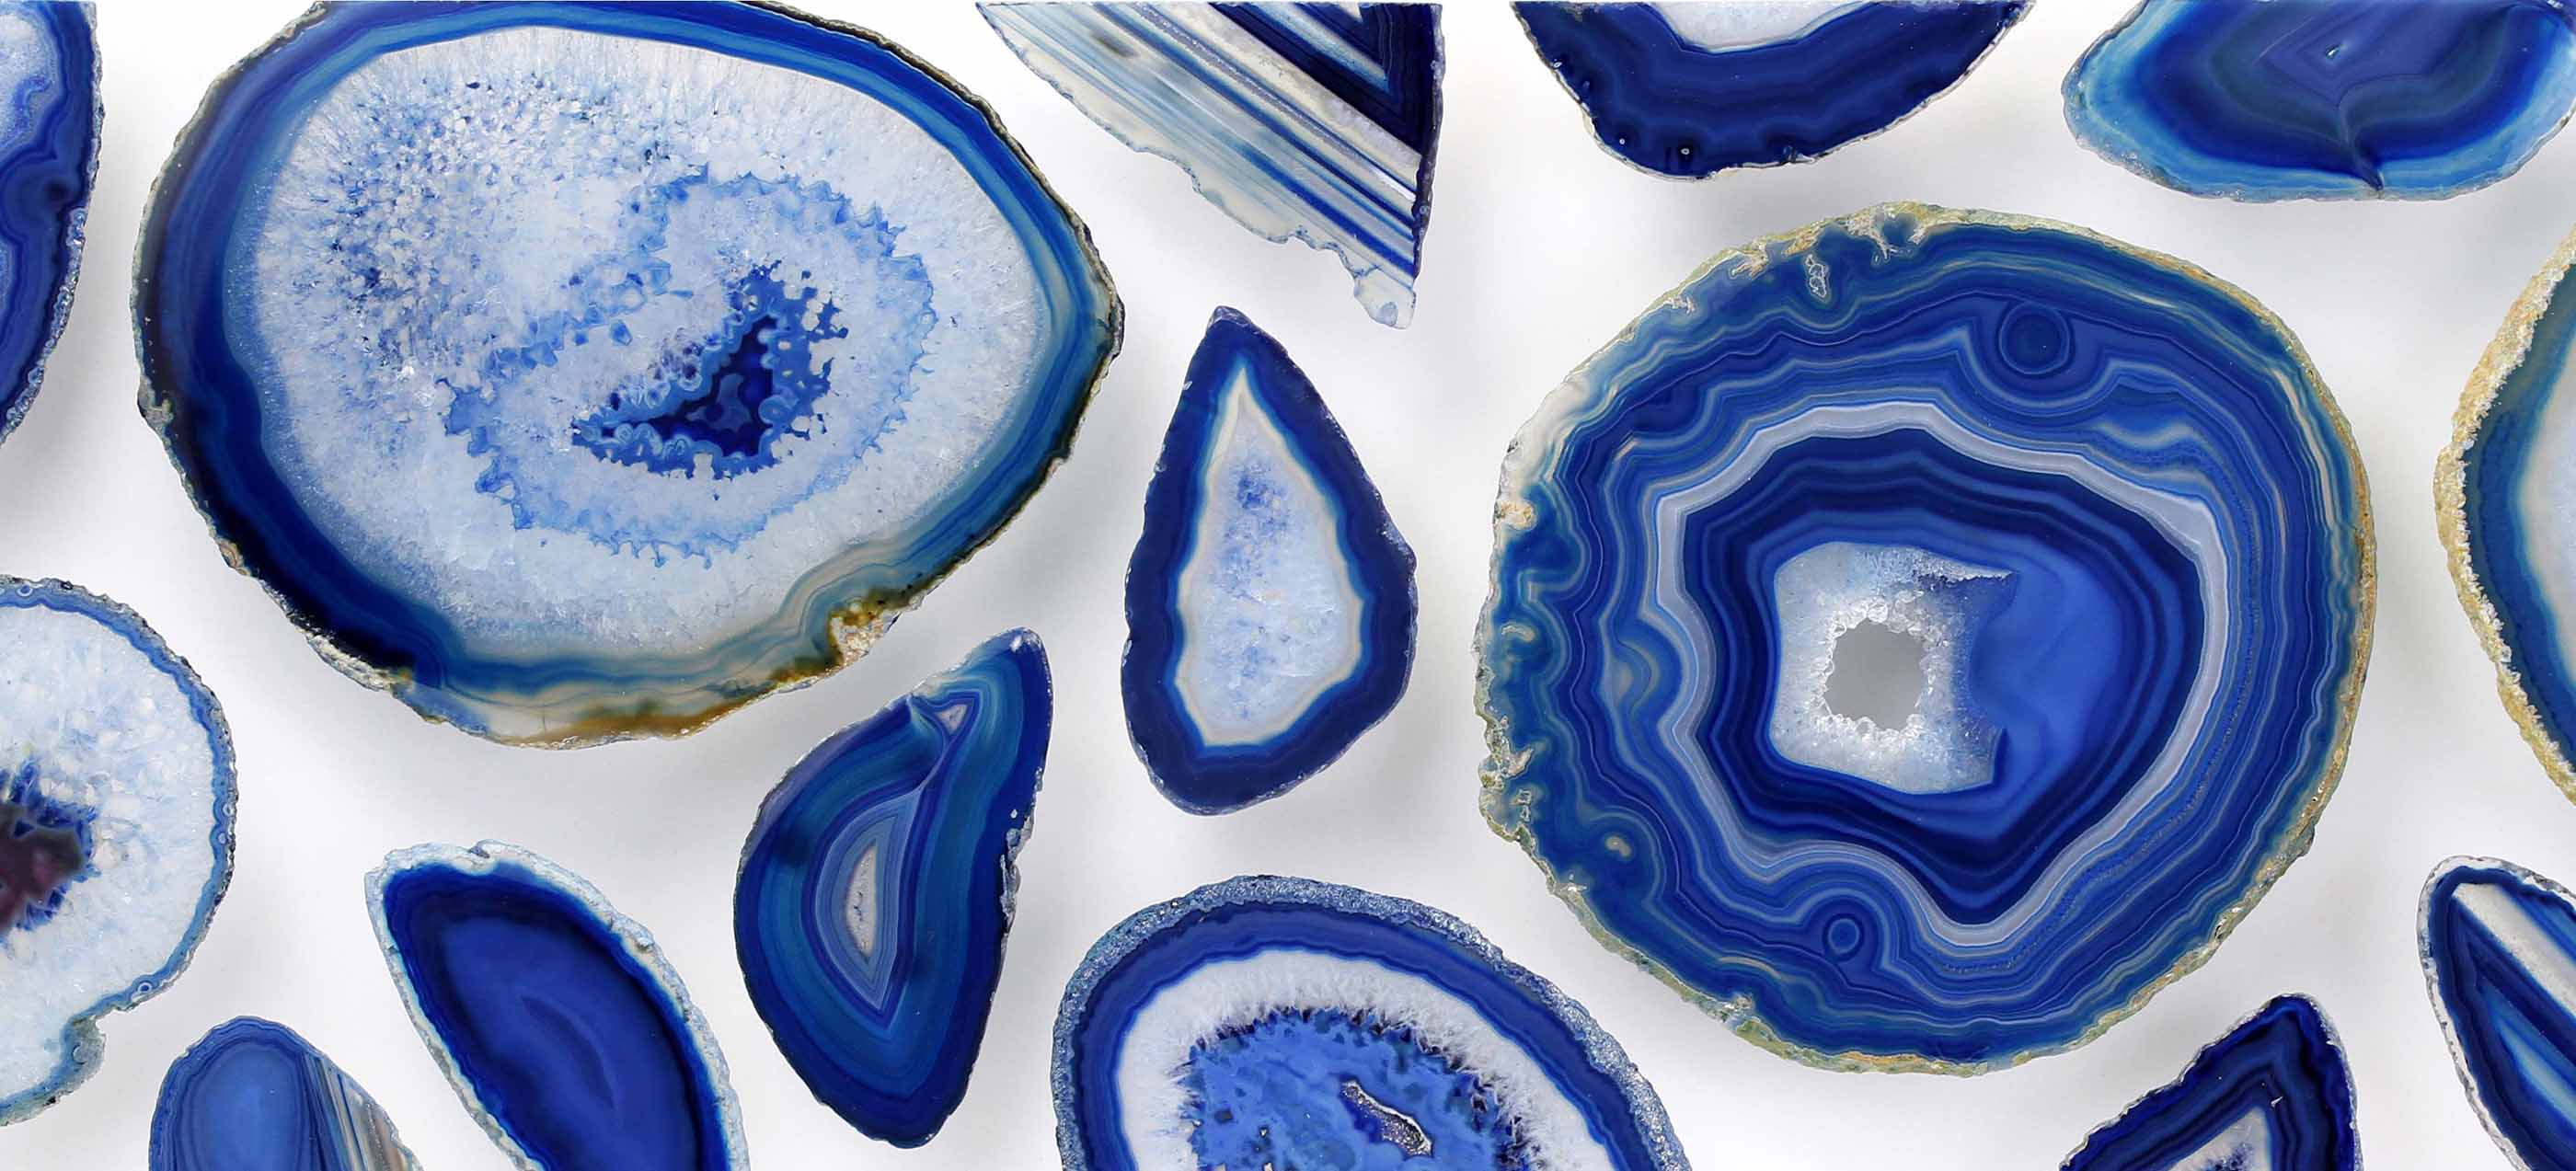 32x20-Agate-Slice-Mosaic-Cobalt-cu-Close-UP-banner-low-rez-2